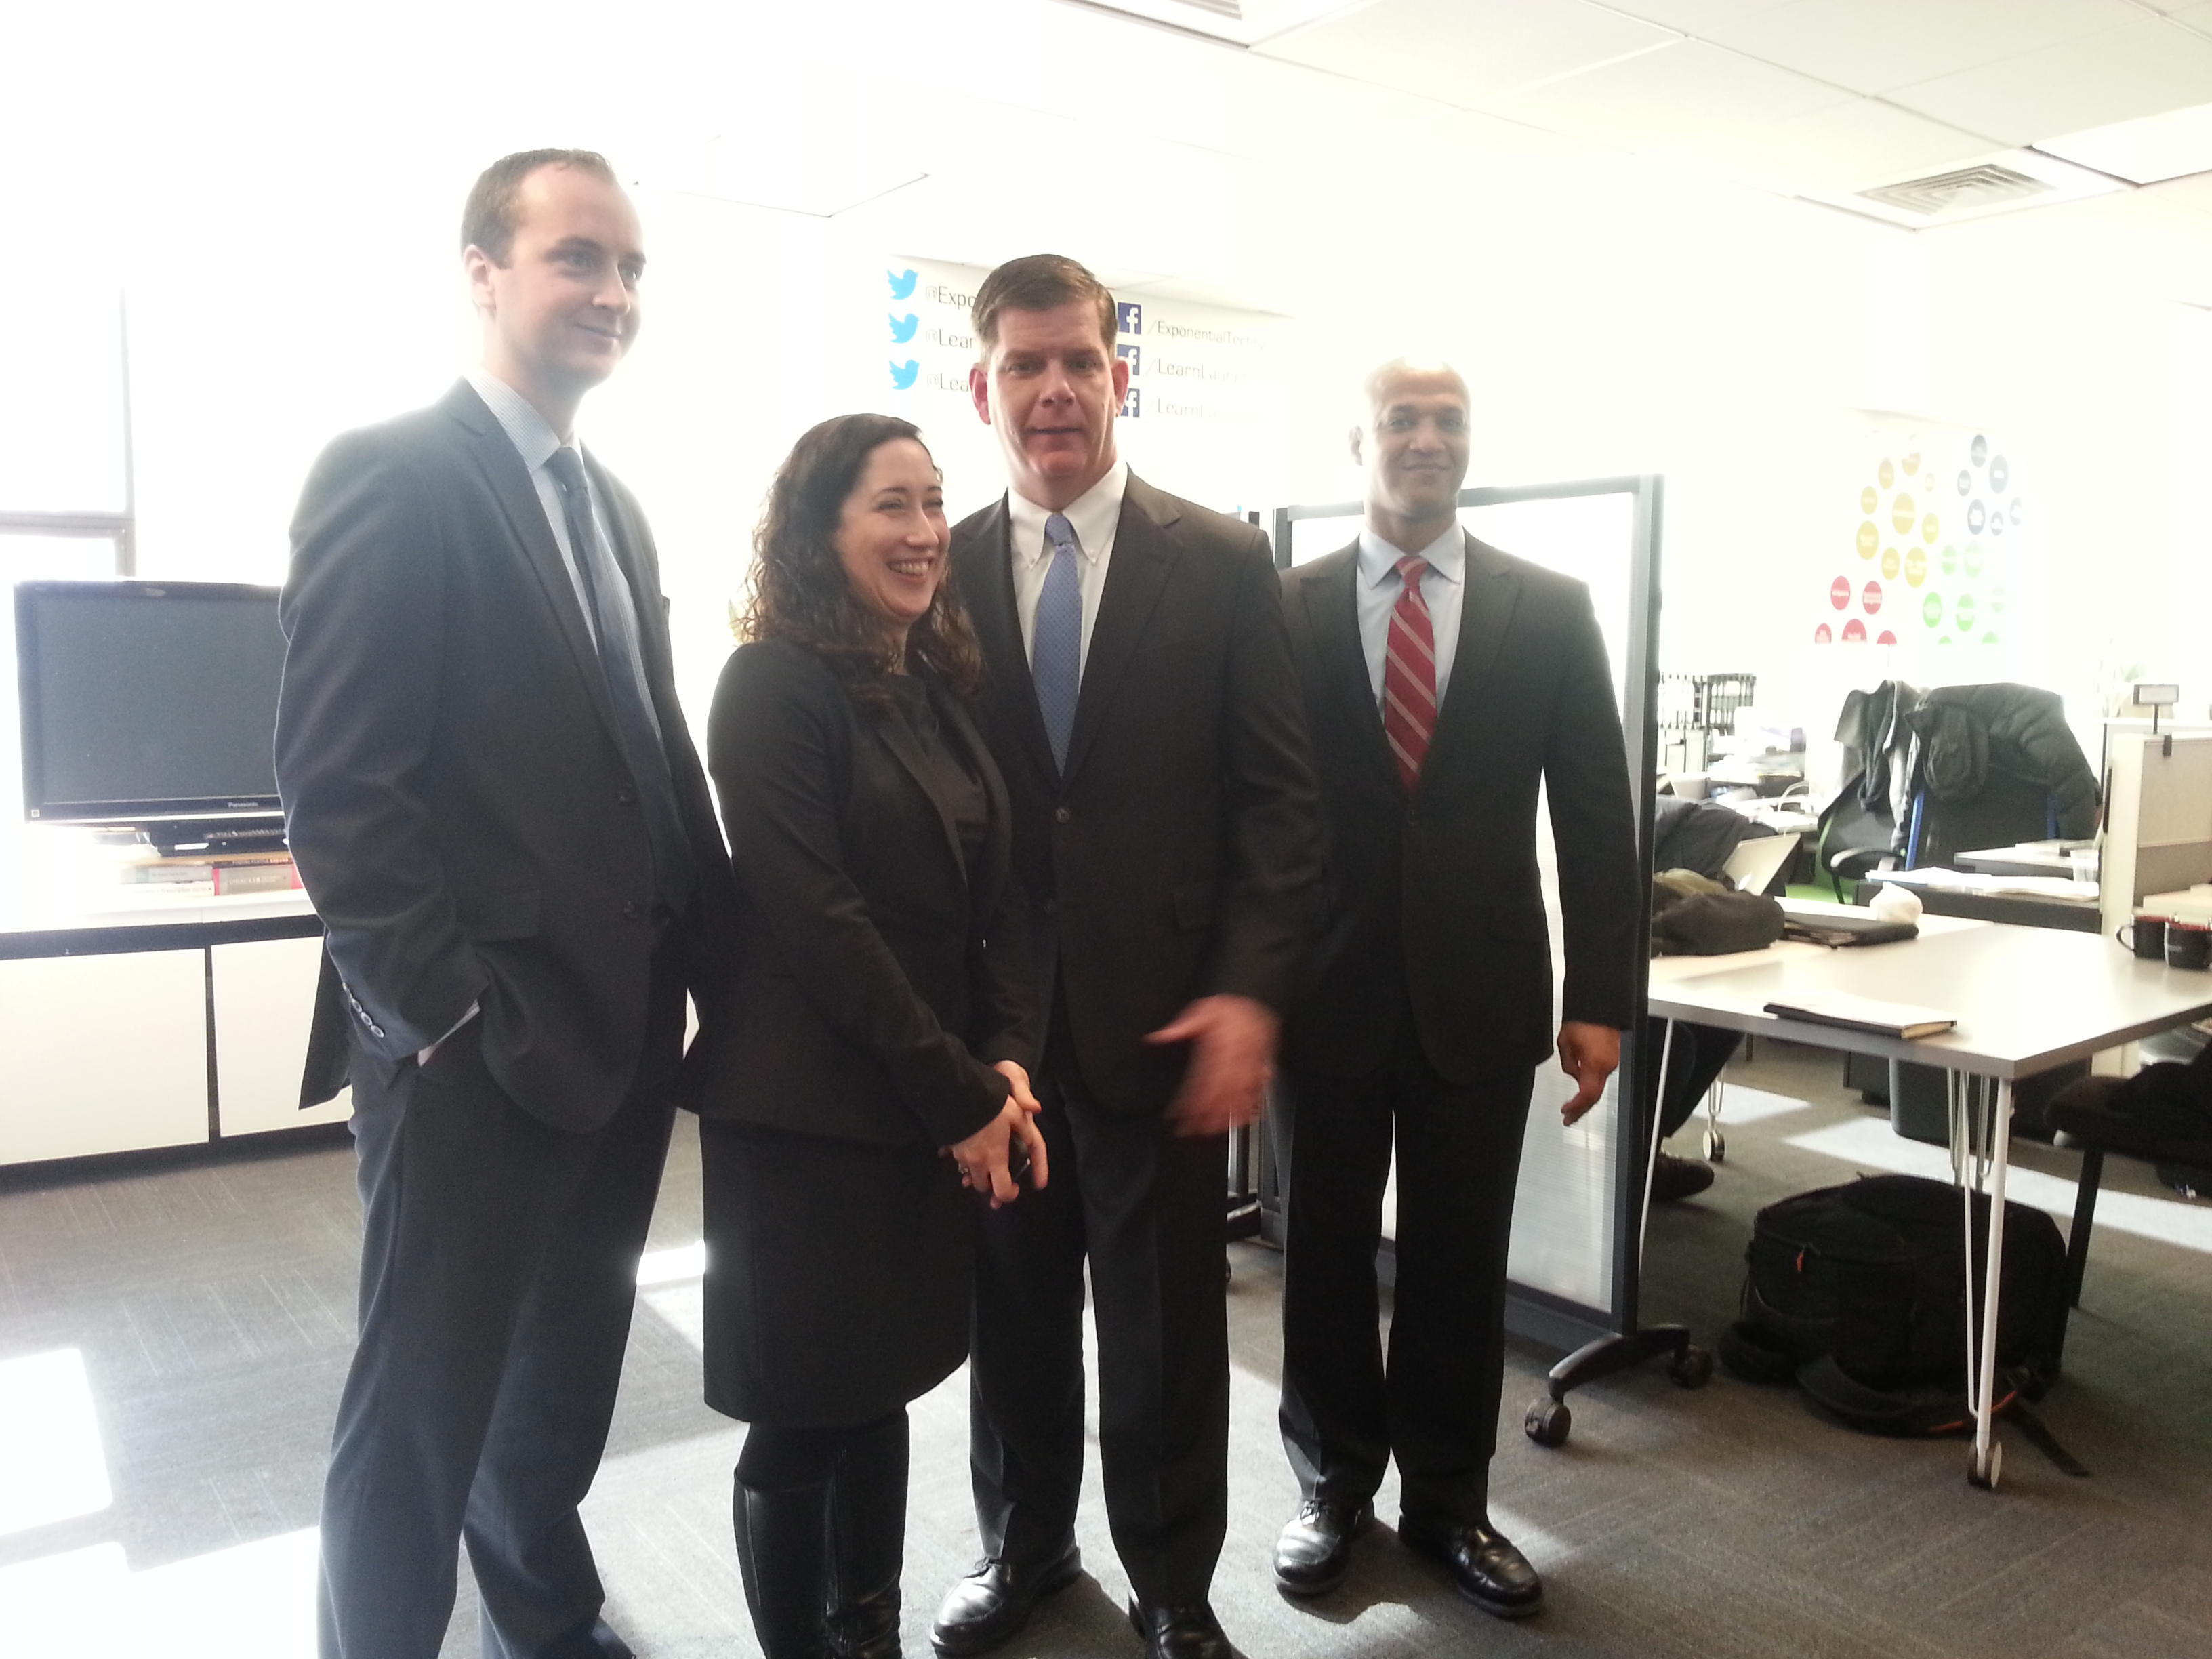 L to R: Mark Racine, Melissa Dodd, Major Marty Walsh, and John Barros